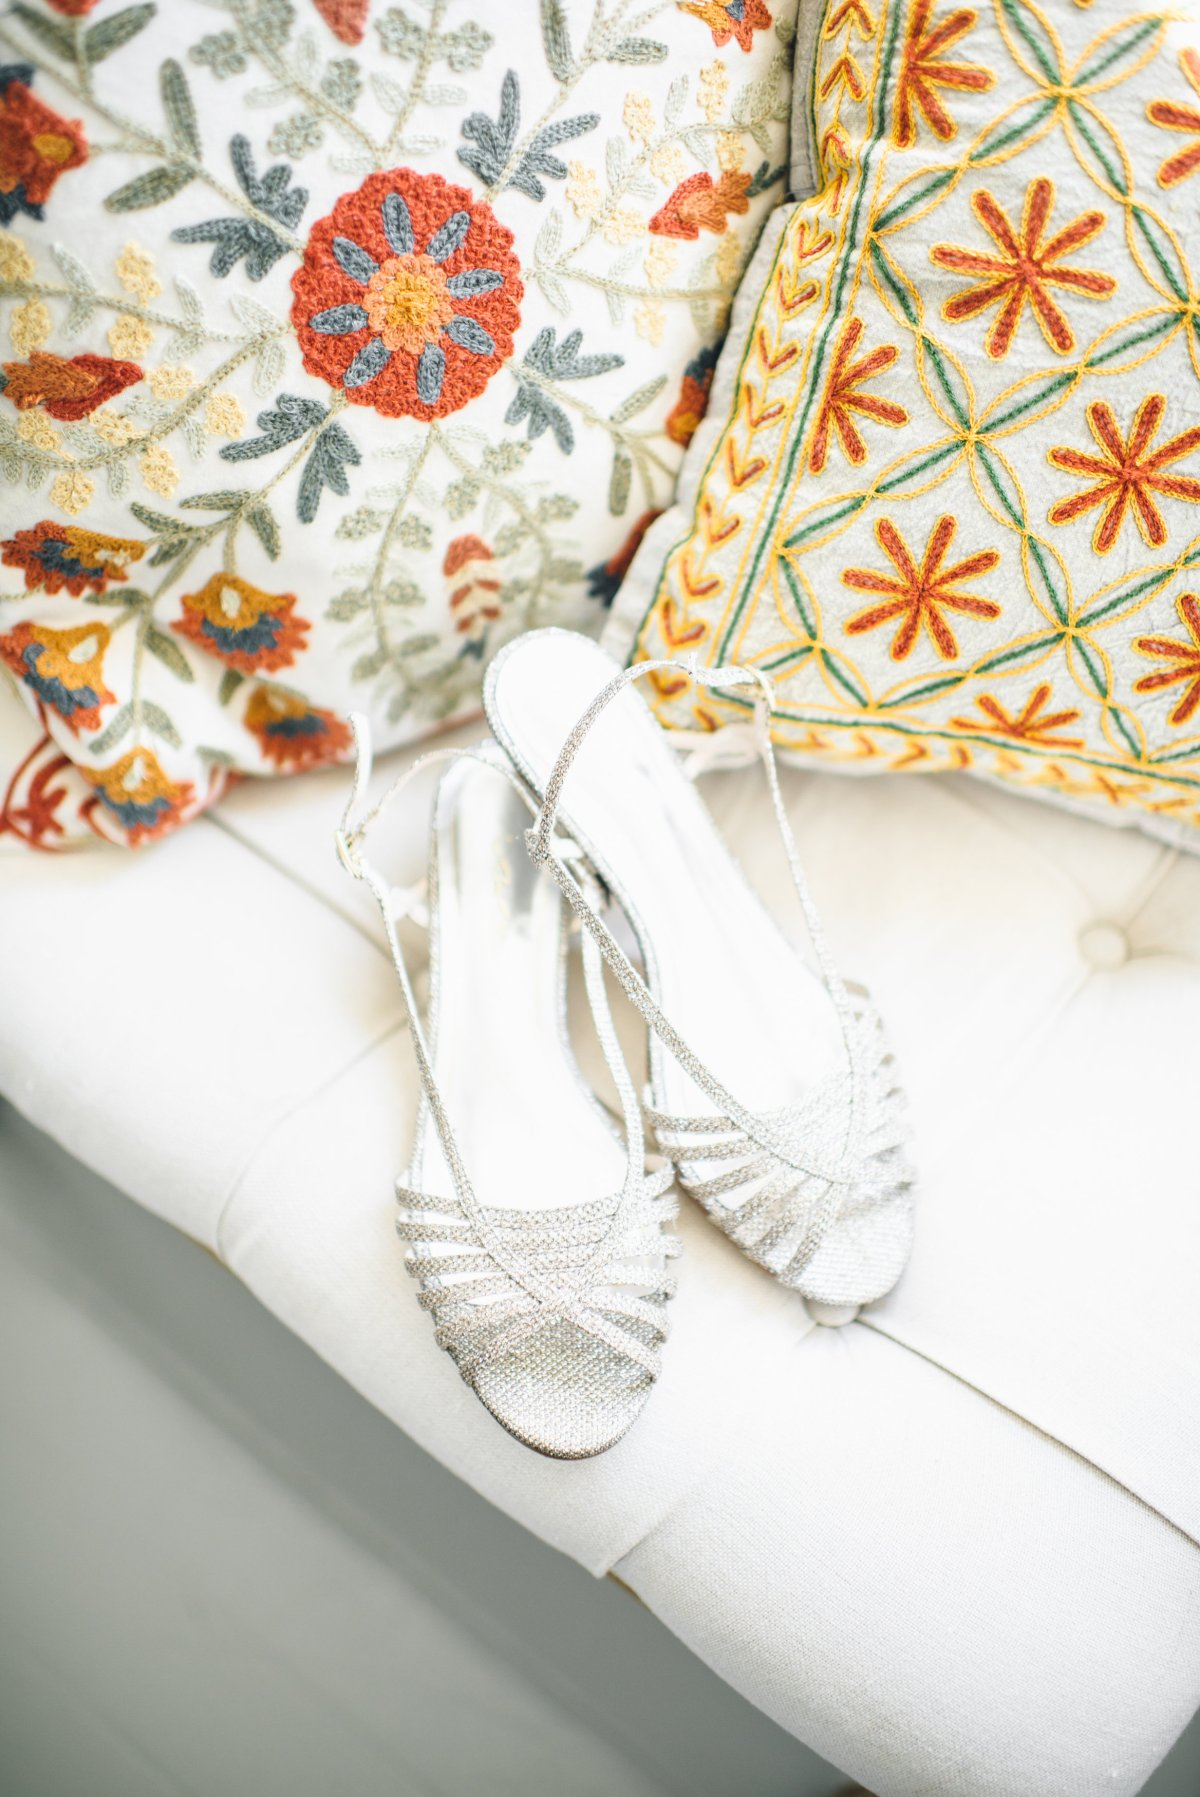 Flanagan Farm Wedding - Bridal Shoes